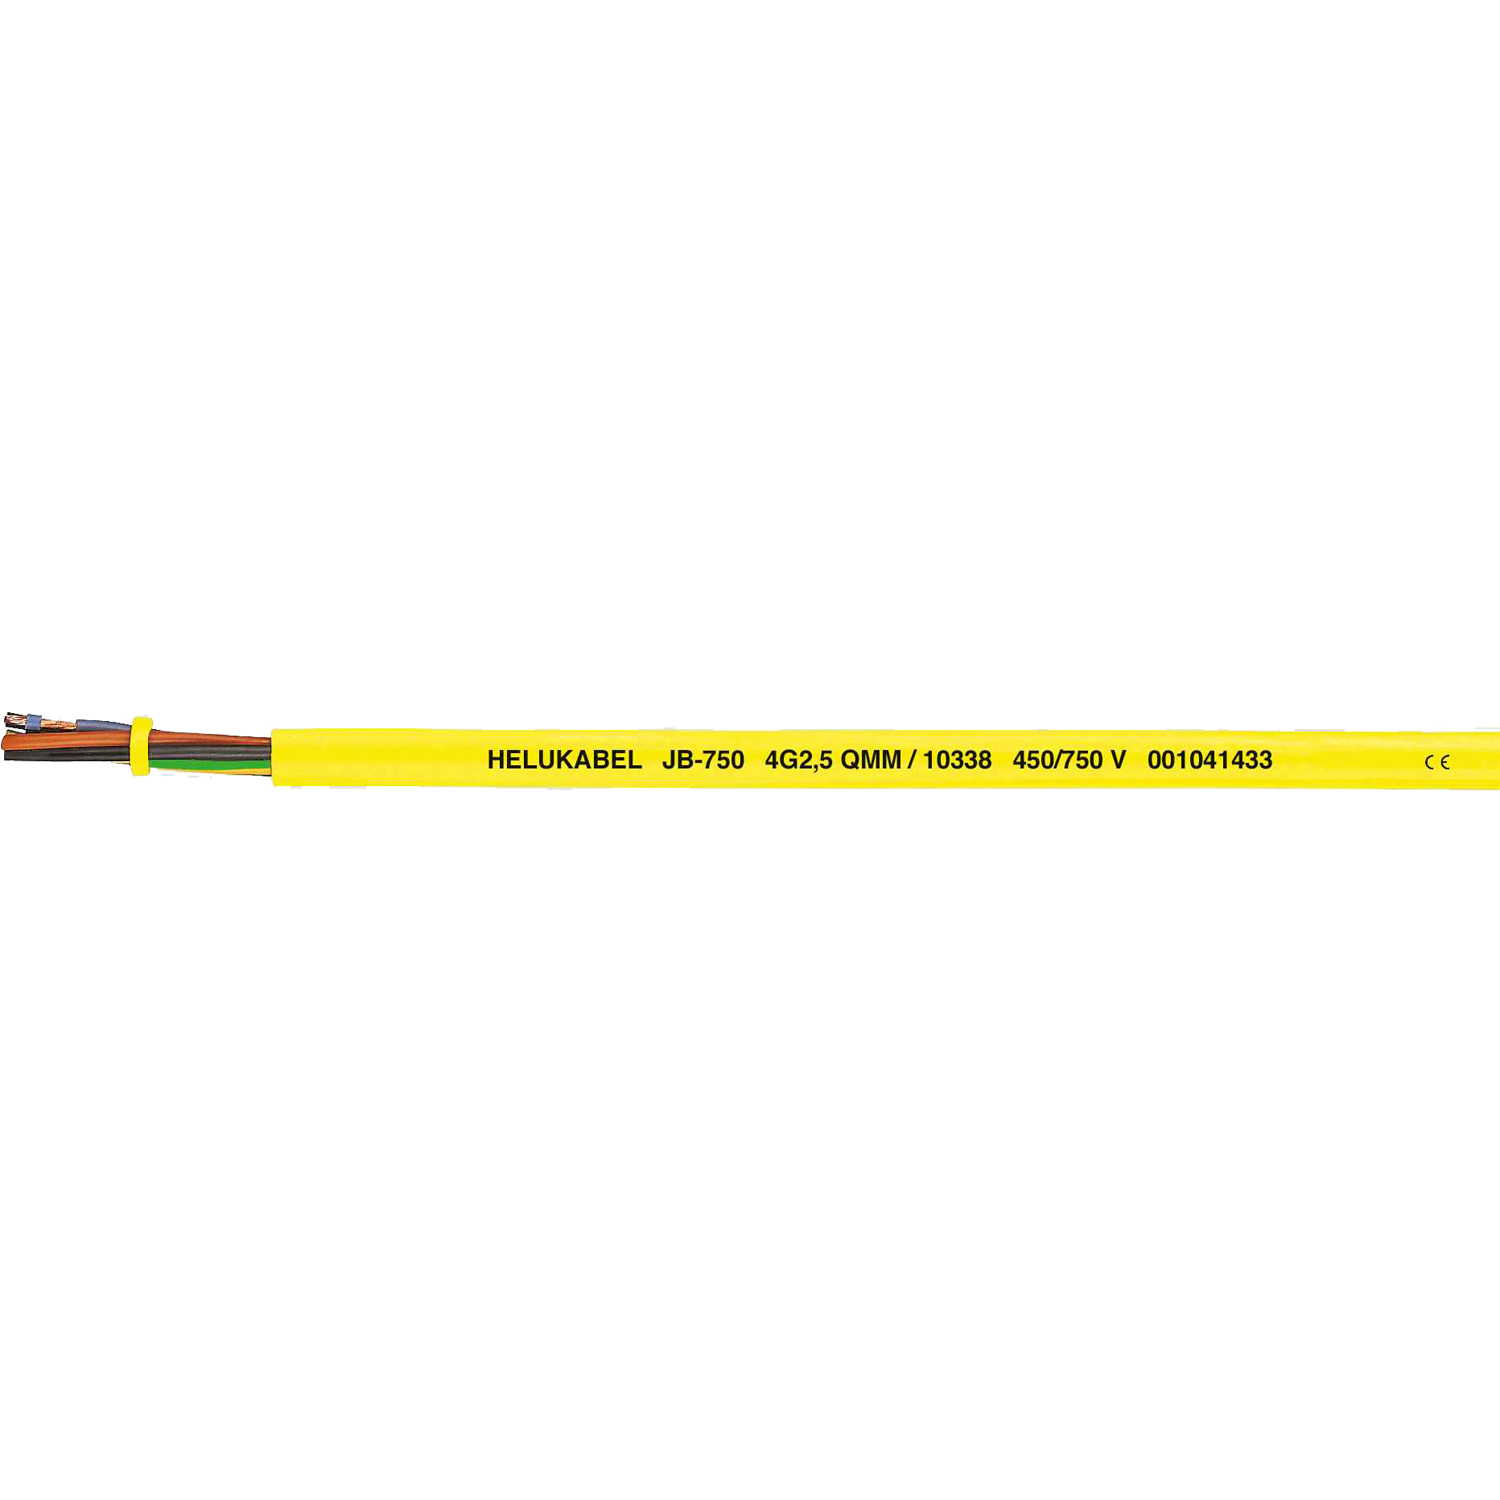 Control Cable PVC JB 750 yellow